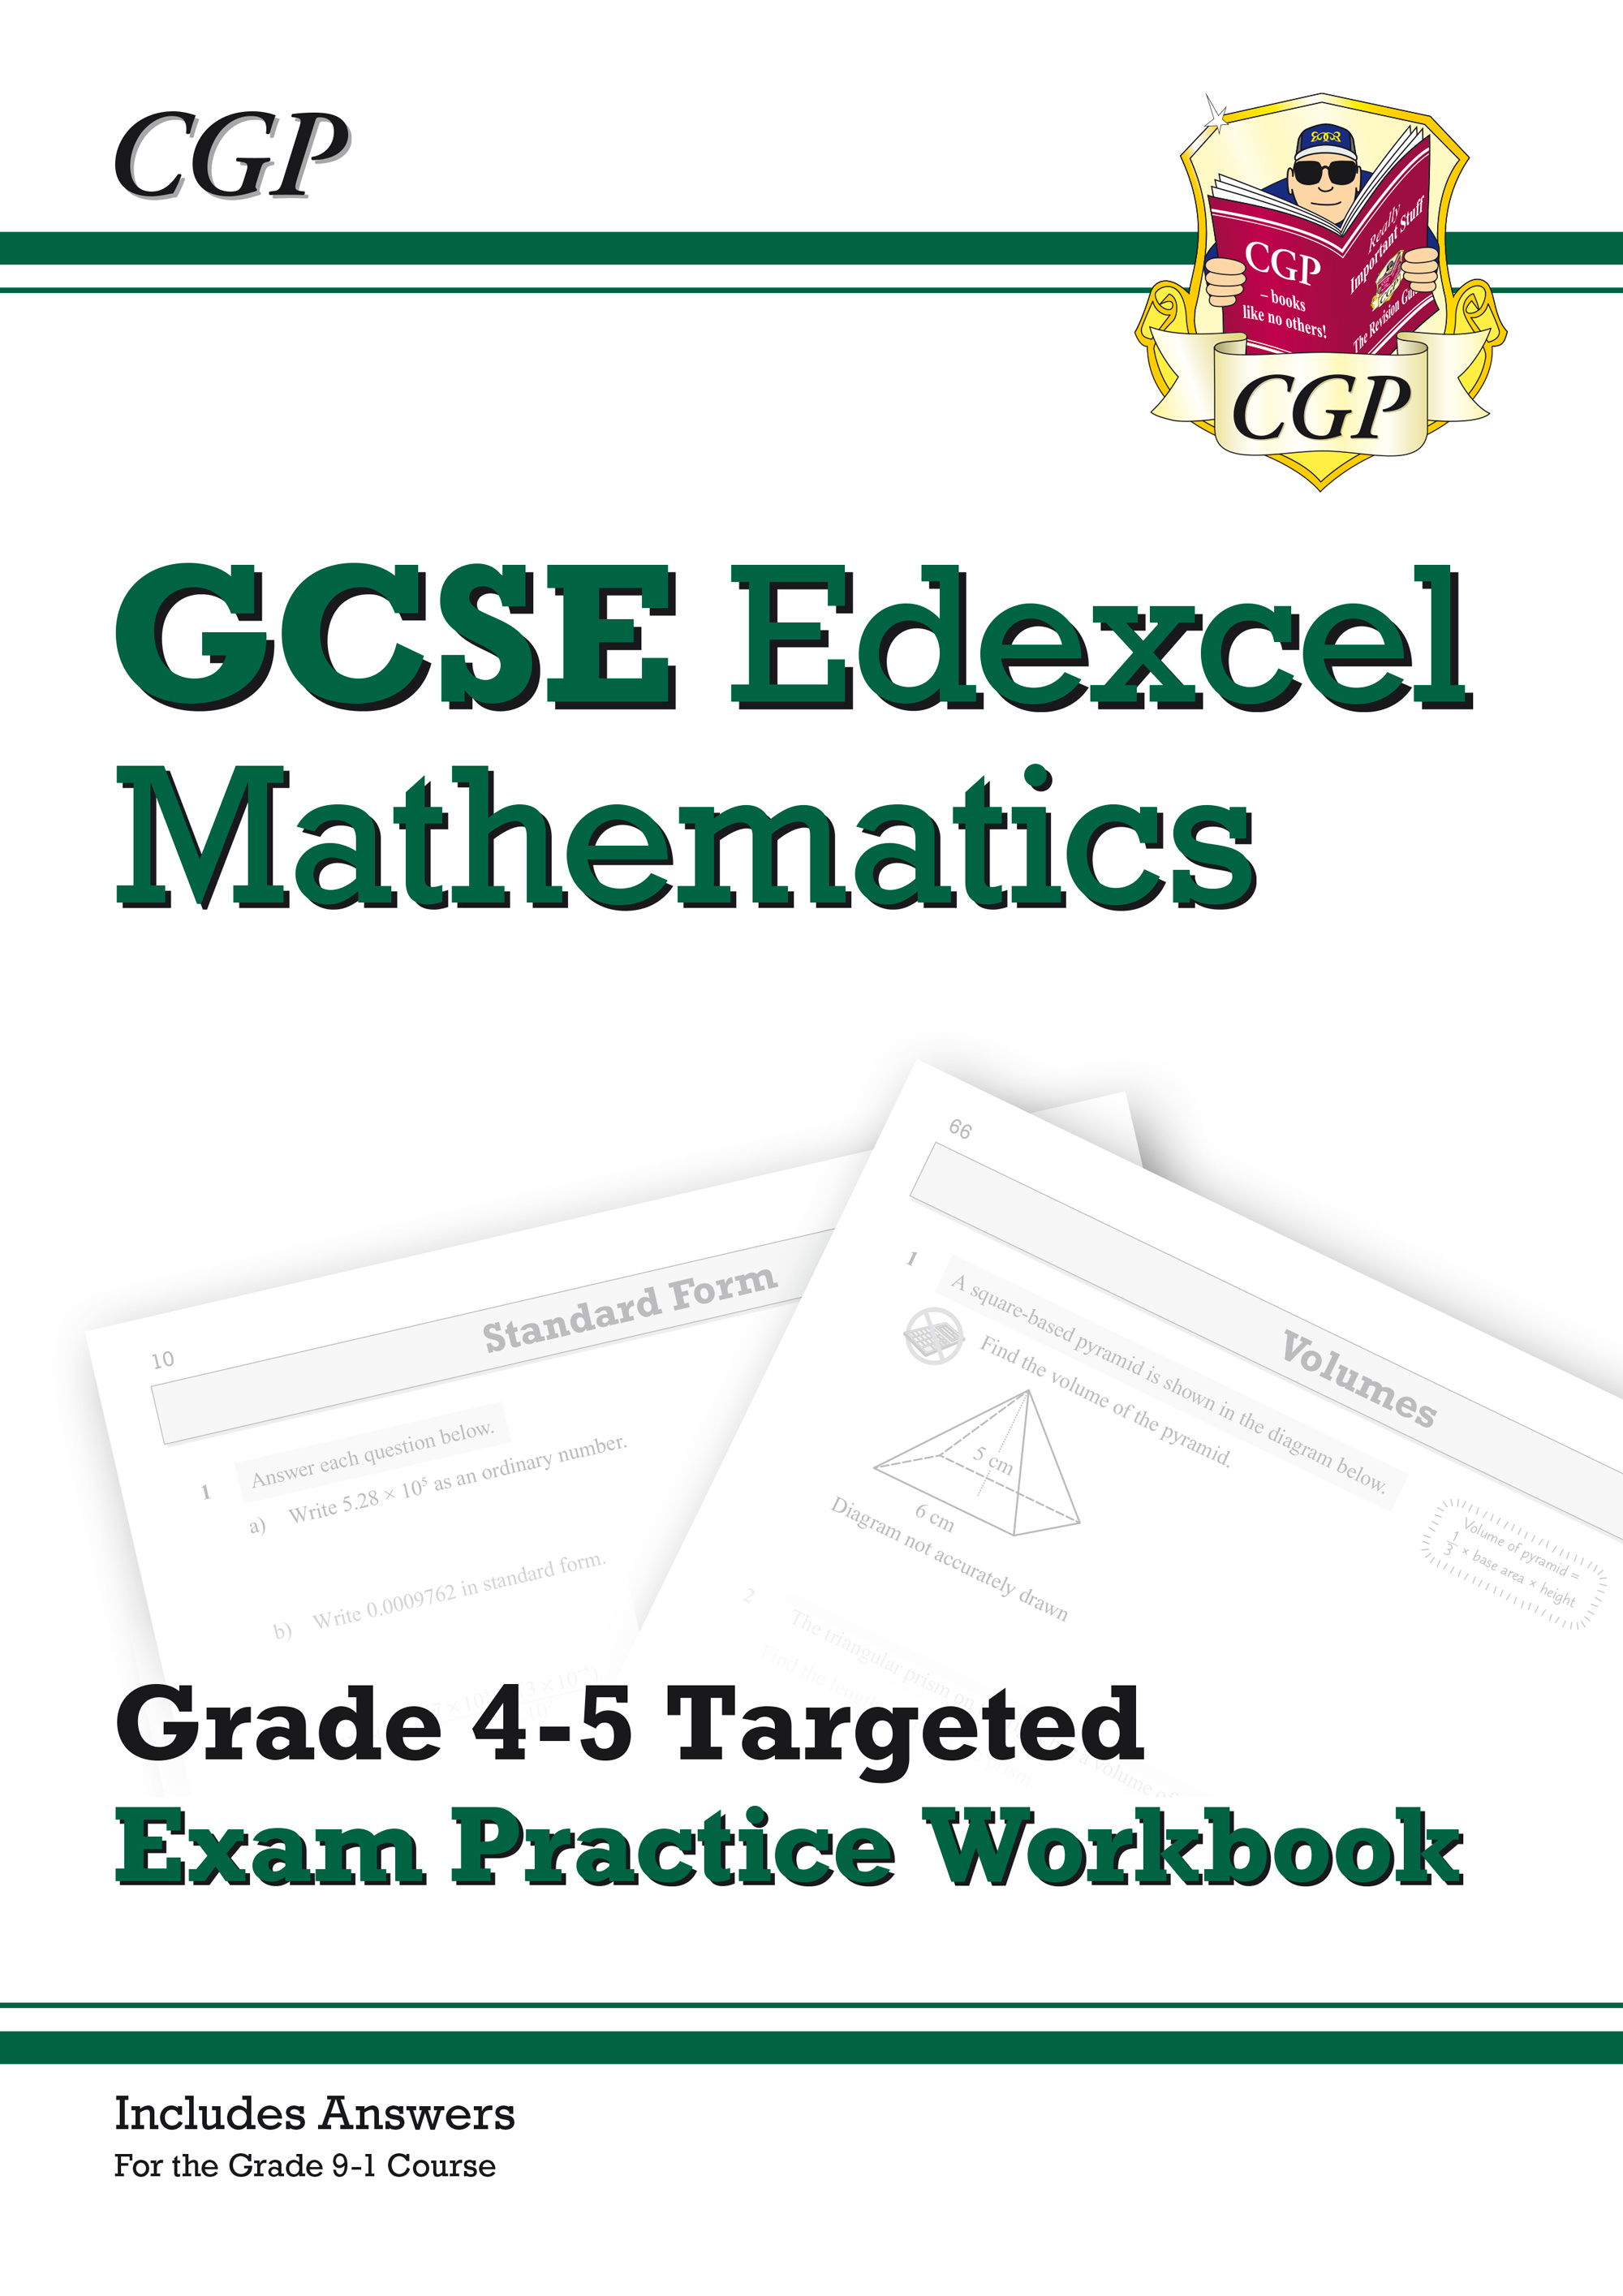 MX5Q41 - GCSE Maths Edexcel Grade 4-5 Targeted Exam Practice Workbook (includes answers)